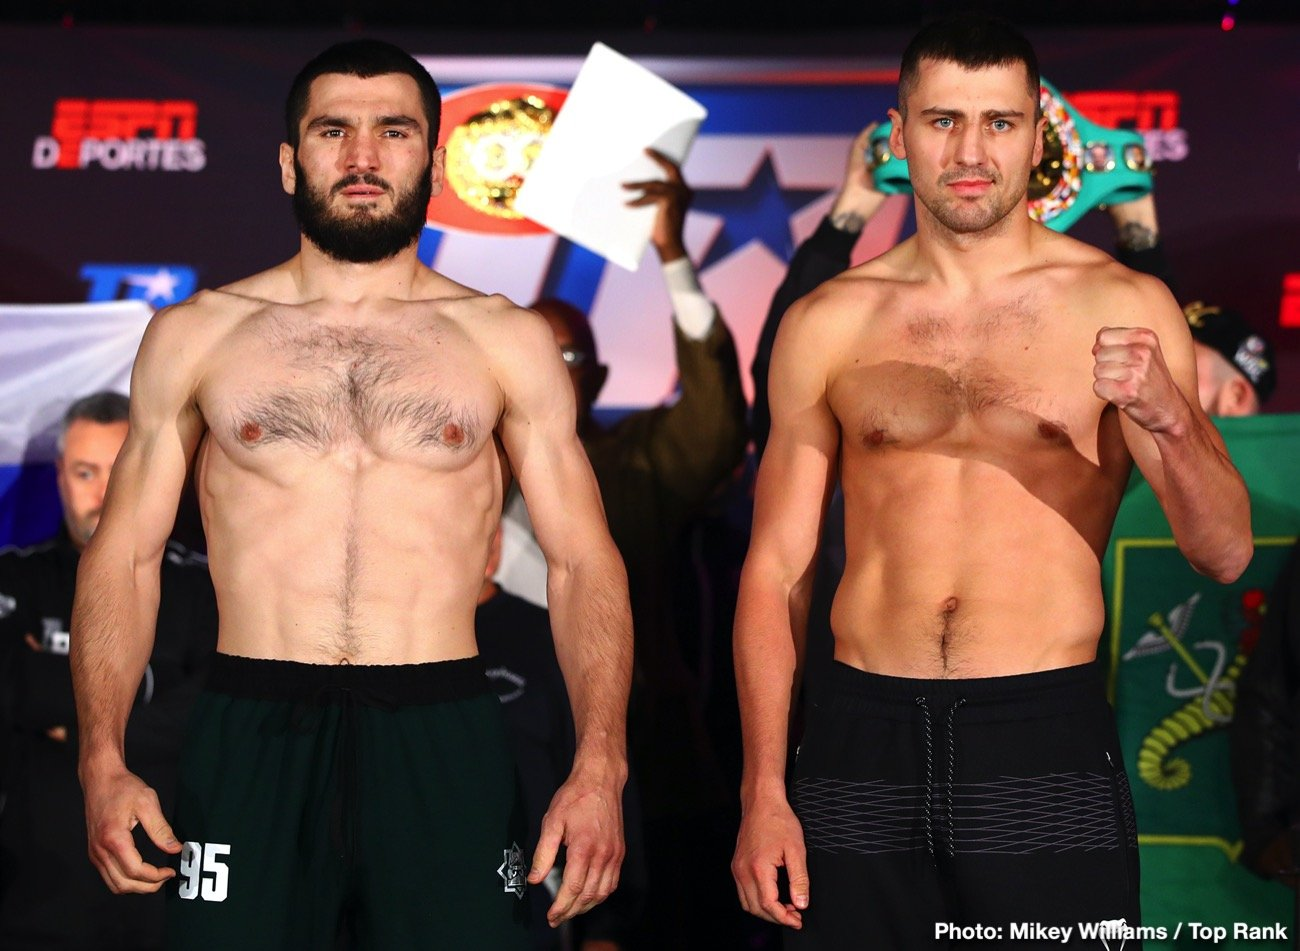 Top Rank Boxing - Light heavyweight champions Artur Beterbiev and Oleksandr Gvozdyk both made weight successfully on Thursday afternoon for their unification match this Friday evening on Top Rank Boxing on ESPN and ESPN Deportes. Beterbiev (14-0, 14 KOs) looked shredded at 174.5 lbs. Gvozdyk (17-0, 14 KOs) weighed 174.3 lbs.  Both fighters look ready for war on Friday.